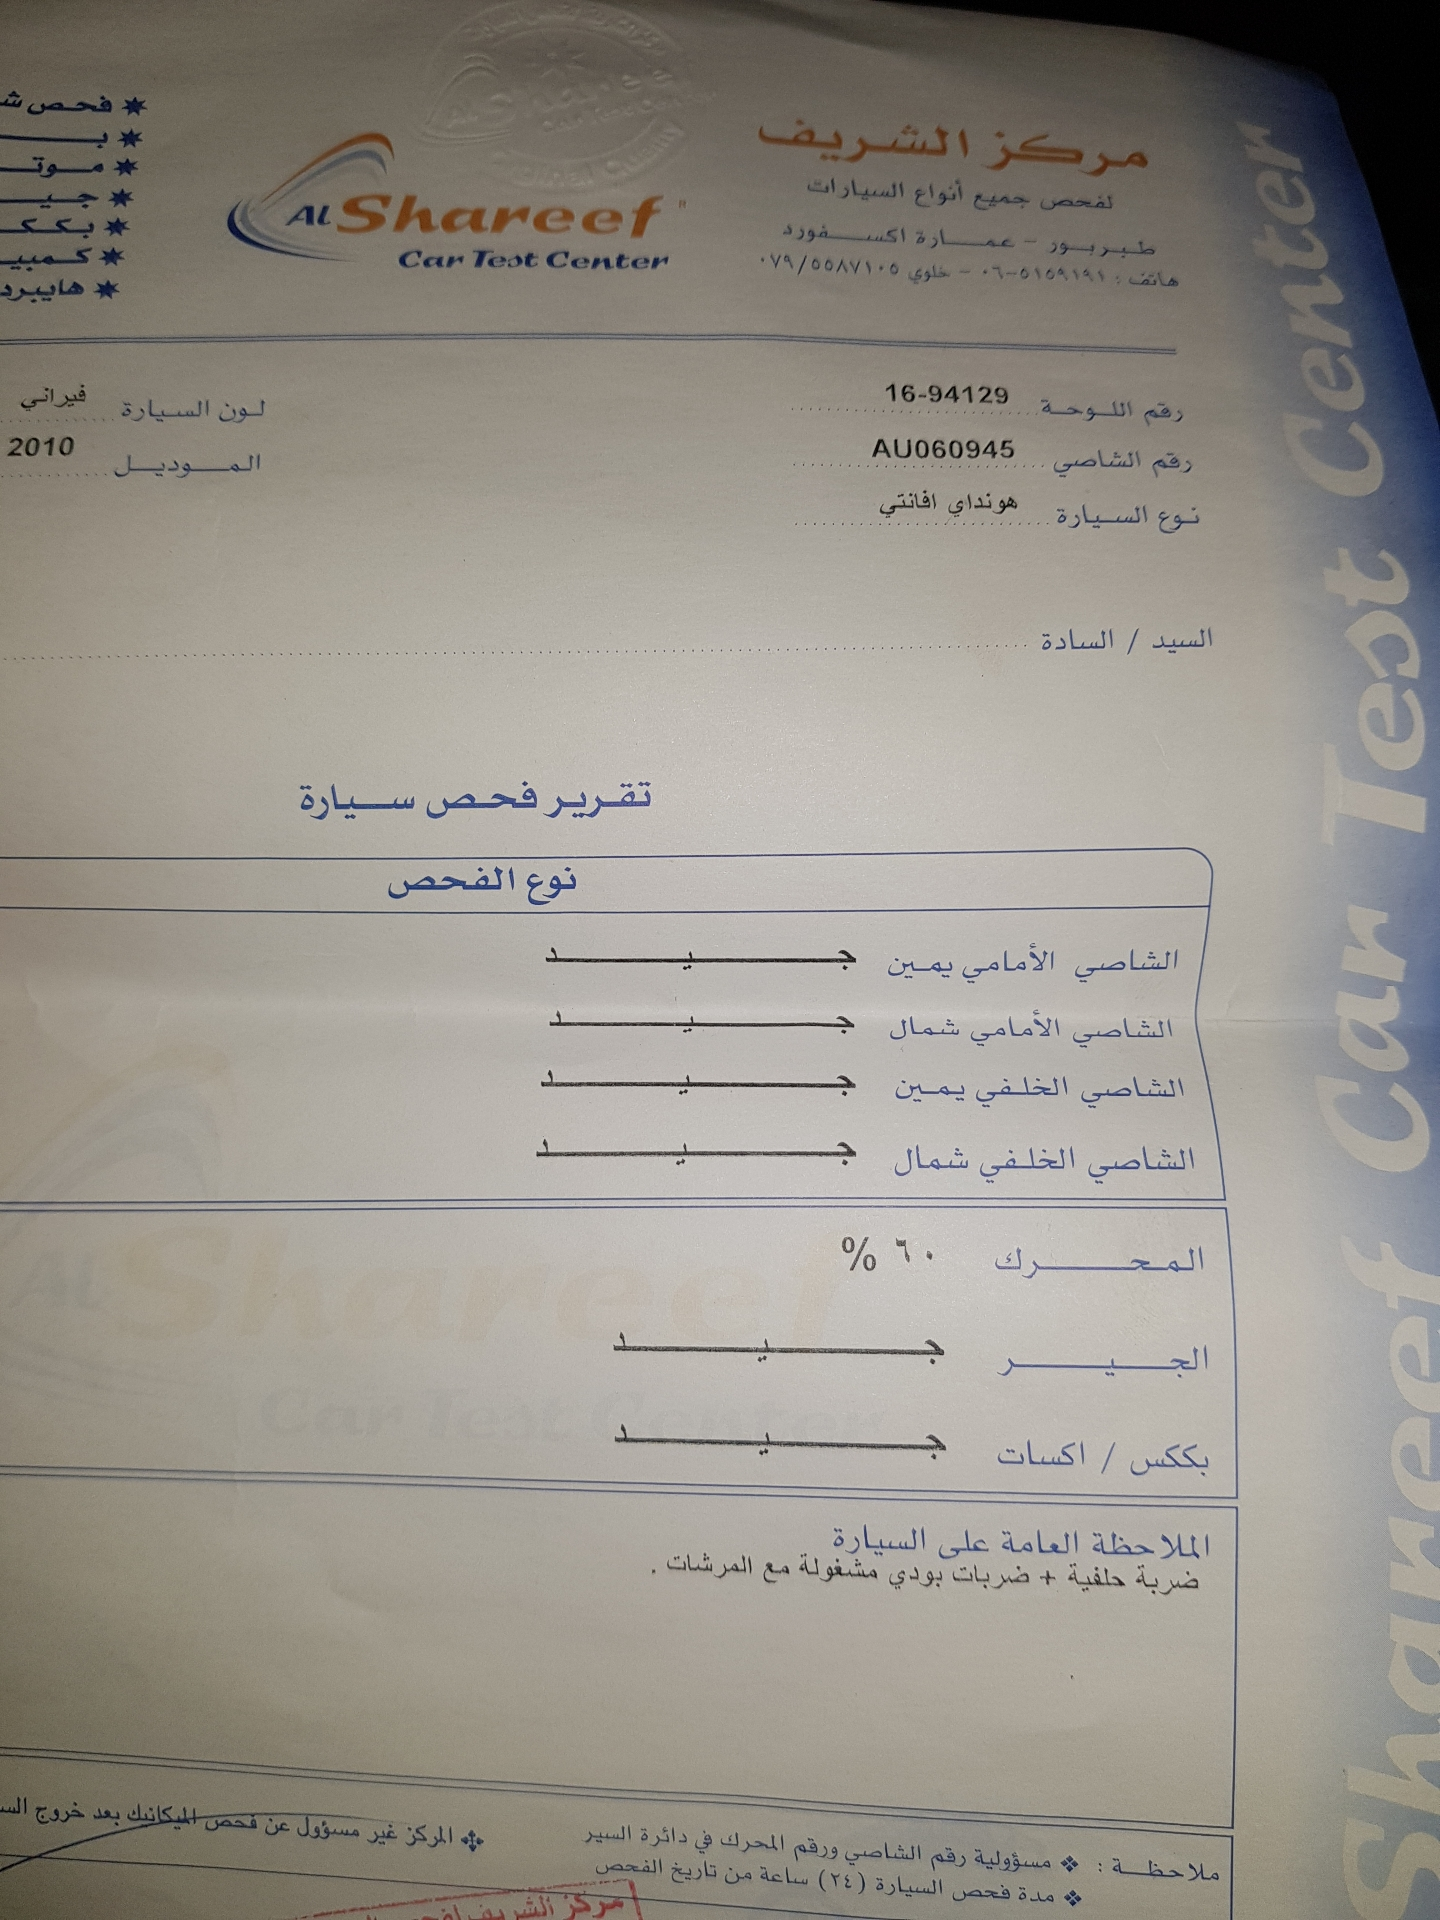 I am advertising my 2016 TOYOTA LAND CRUISER for sale at the rate of $15000 because i relocated to another country, the car is in good and excellent condition, -  هيونداي hd 2010 فحص كامل...